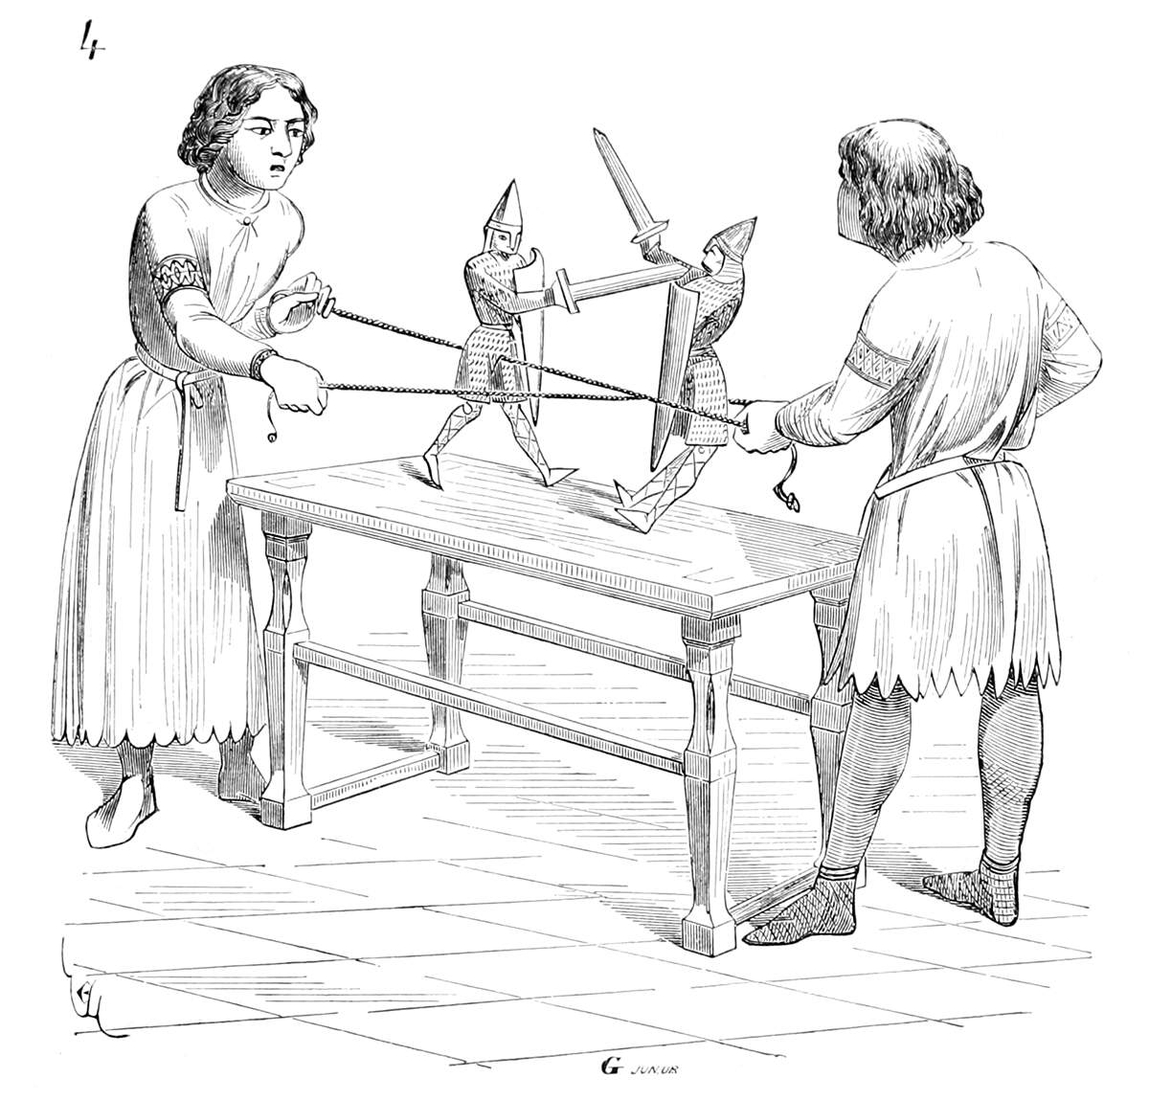 13-Two-boys-playing-with-puppets-Eugène-Viollet-le-Duc-Gothic-Drawings-from-an-Architect-in-18th-Century-www-designstack-co